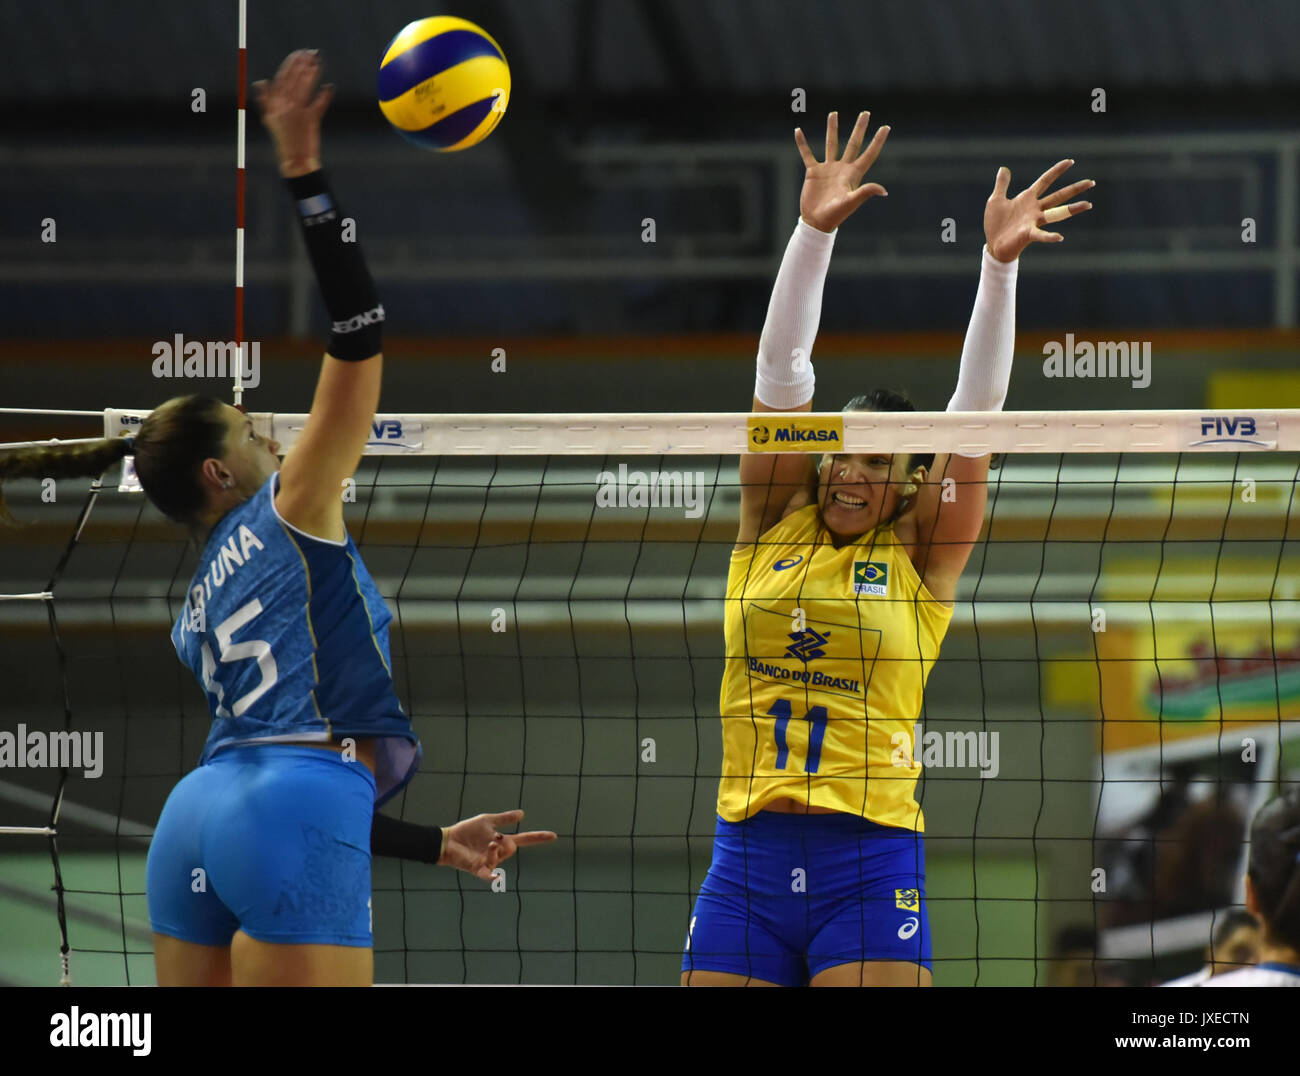 Argentina's Antonela Fortuna (L) in action against Brazil's Tandara Caixeta during their South American Women'sStock Photo